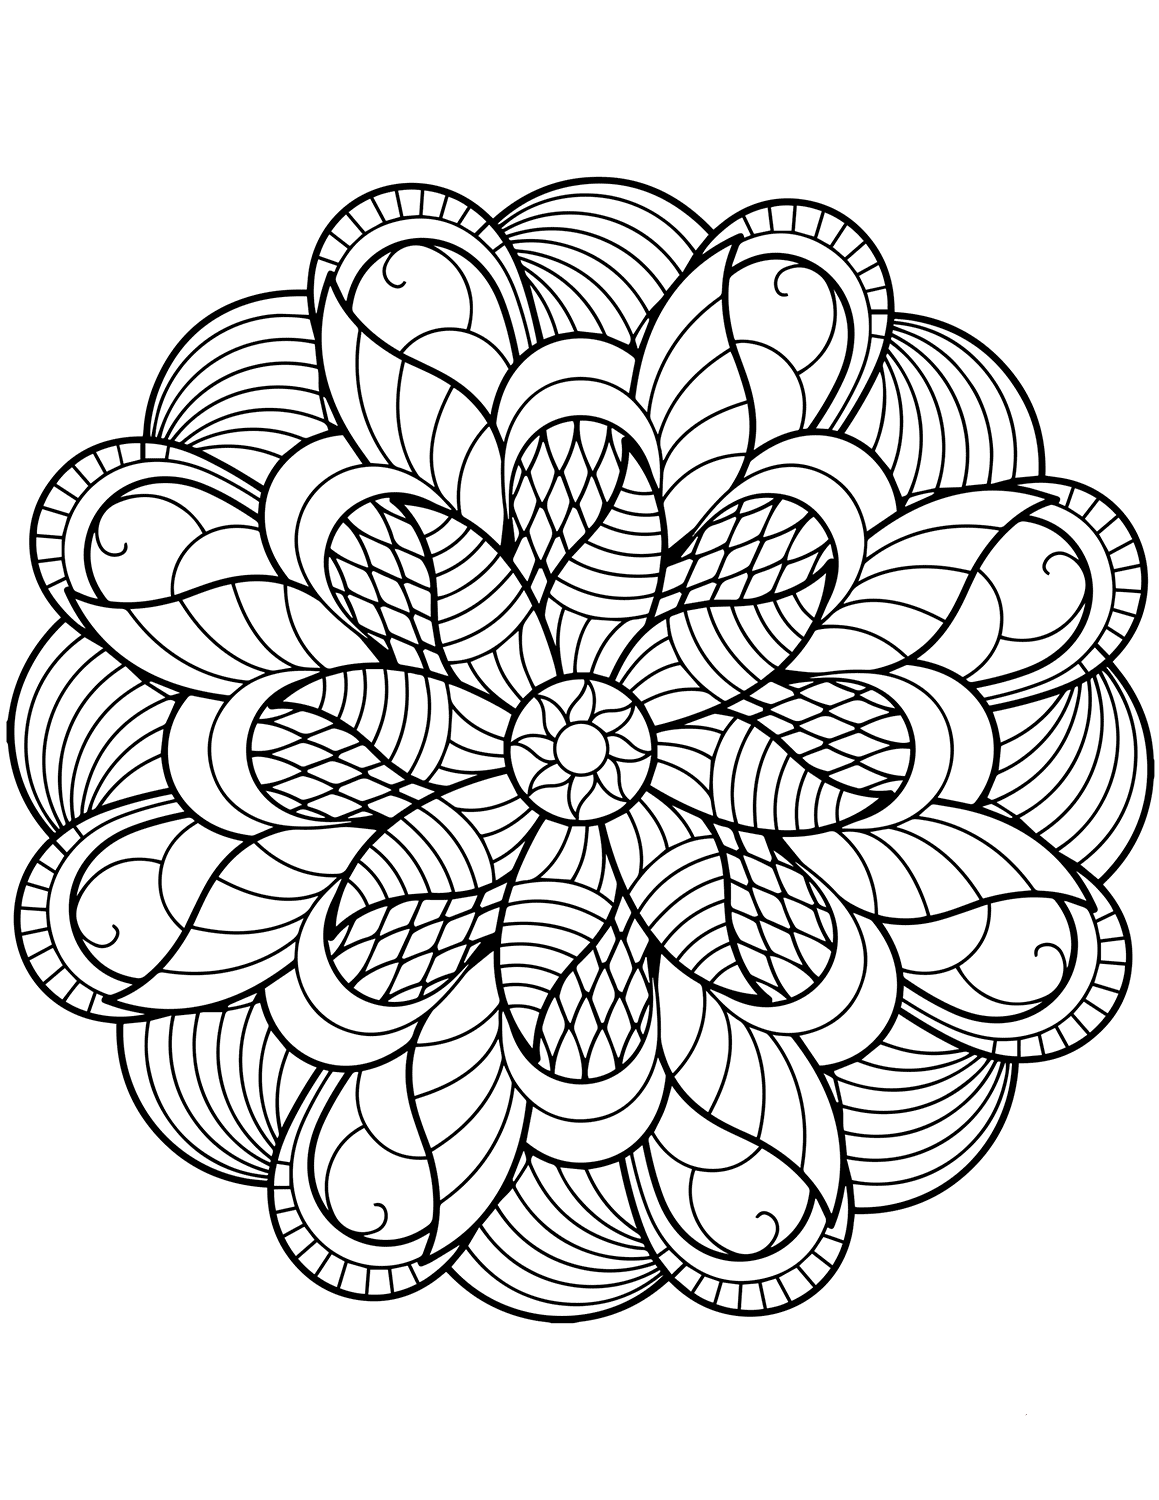 mandela pictures to color color your stress away with mandala coloring pages skip mandela to color pictures